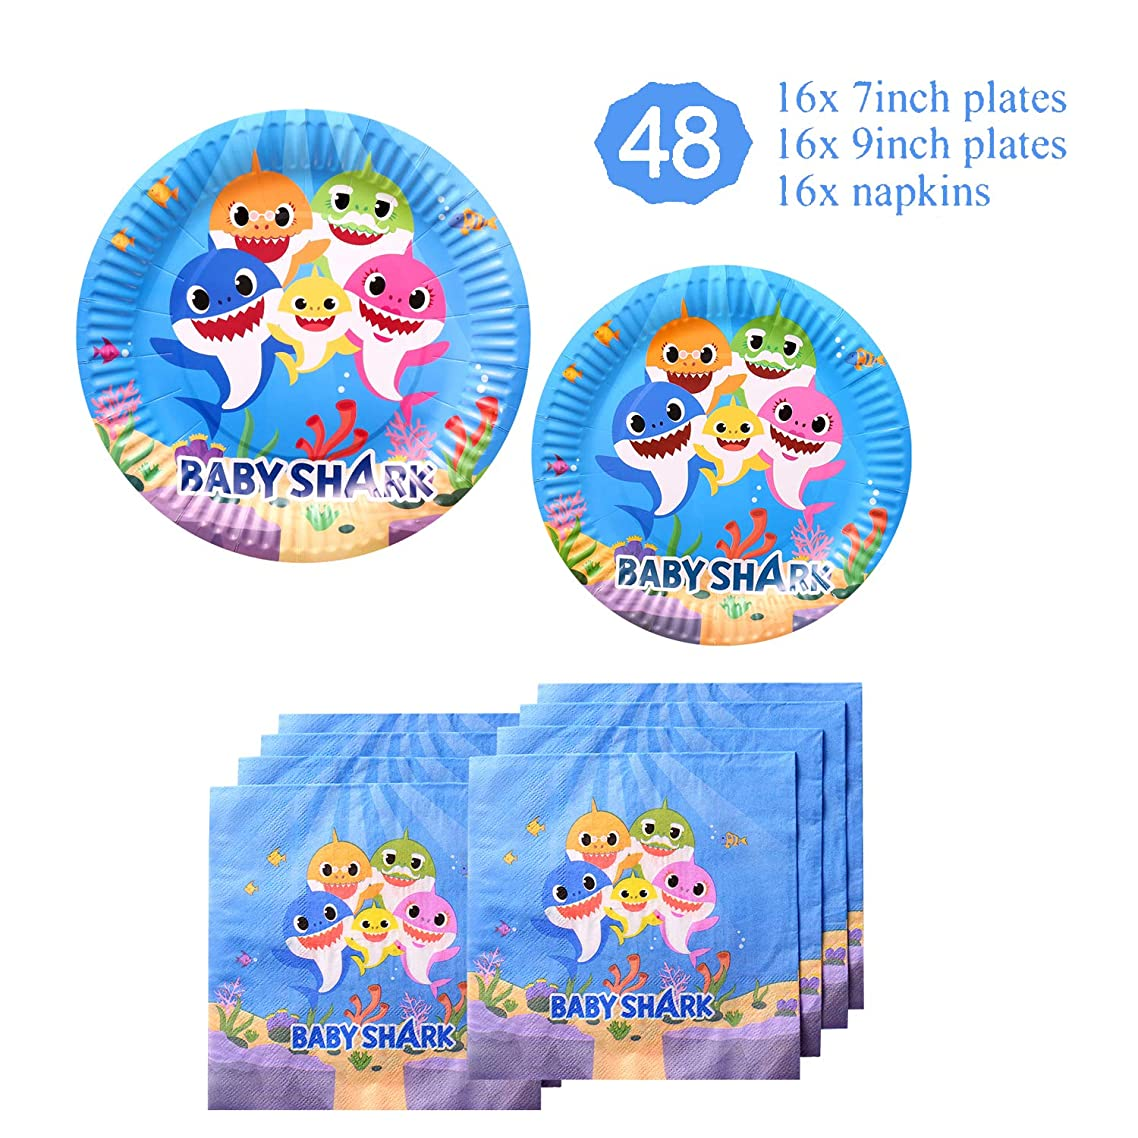 Grabo Shark Baby Themed Party Supplies Set – Cute Shark Plates and Napkins - Cute Shark Birthday Party Decorations for Kids - Serves 16